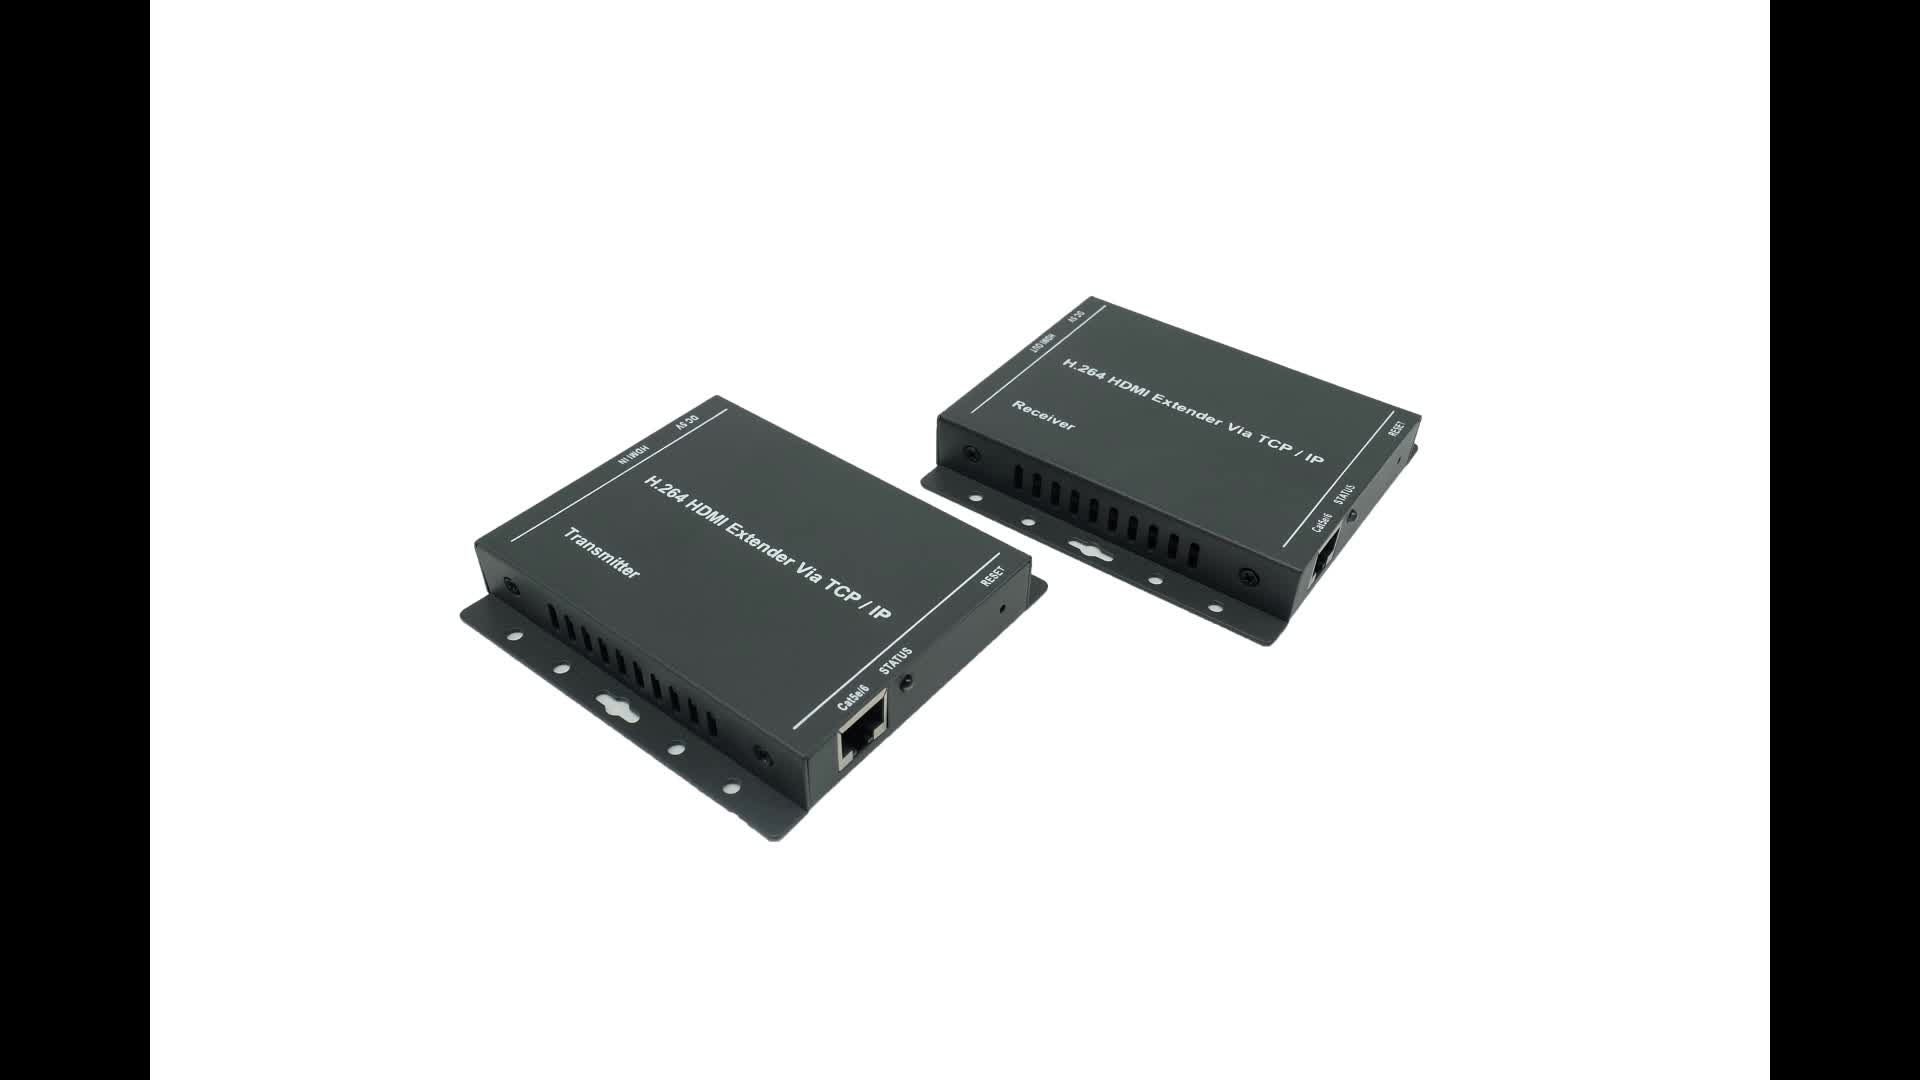 PWAY DT216L Video Transmitter and Receiver 200M Over IP one to many 1080P HD Extender